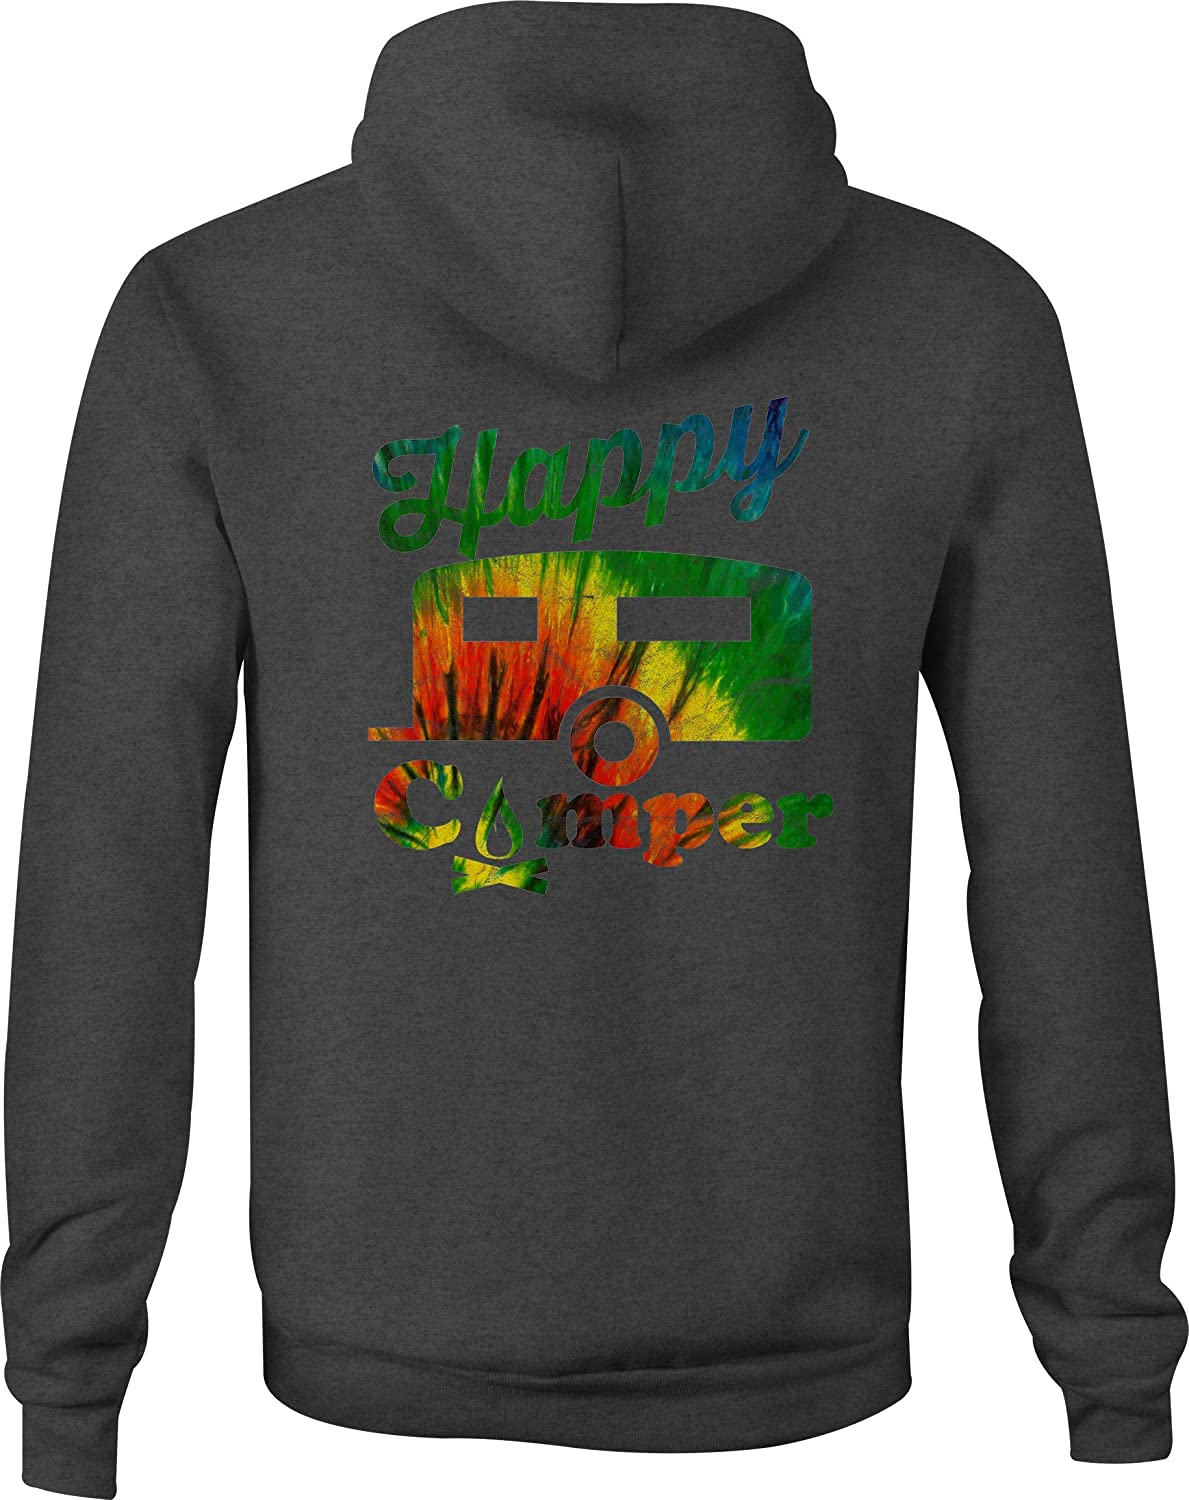 Zip Up Hoodie Campfire Tiedye Hooded Sweatshirt for Men